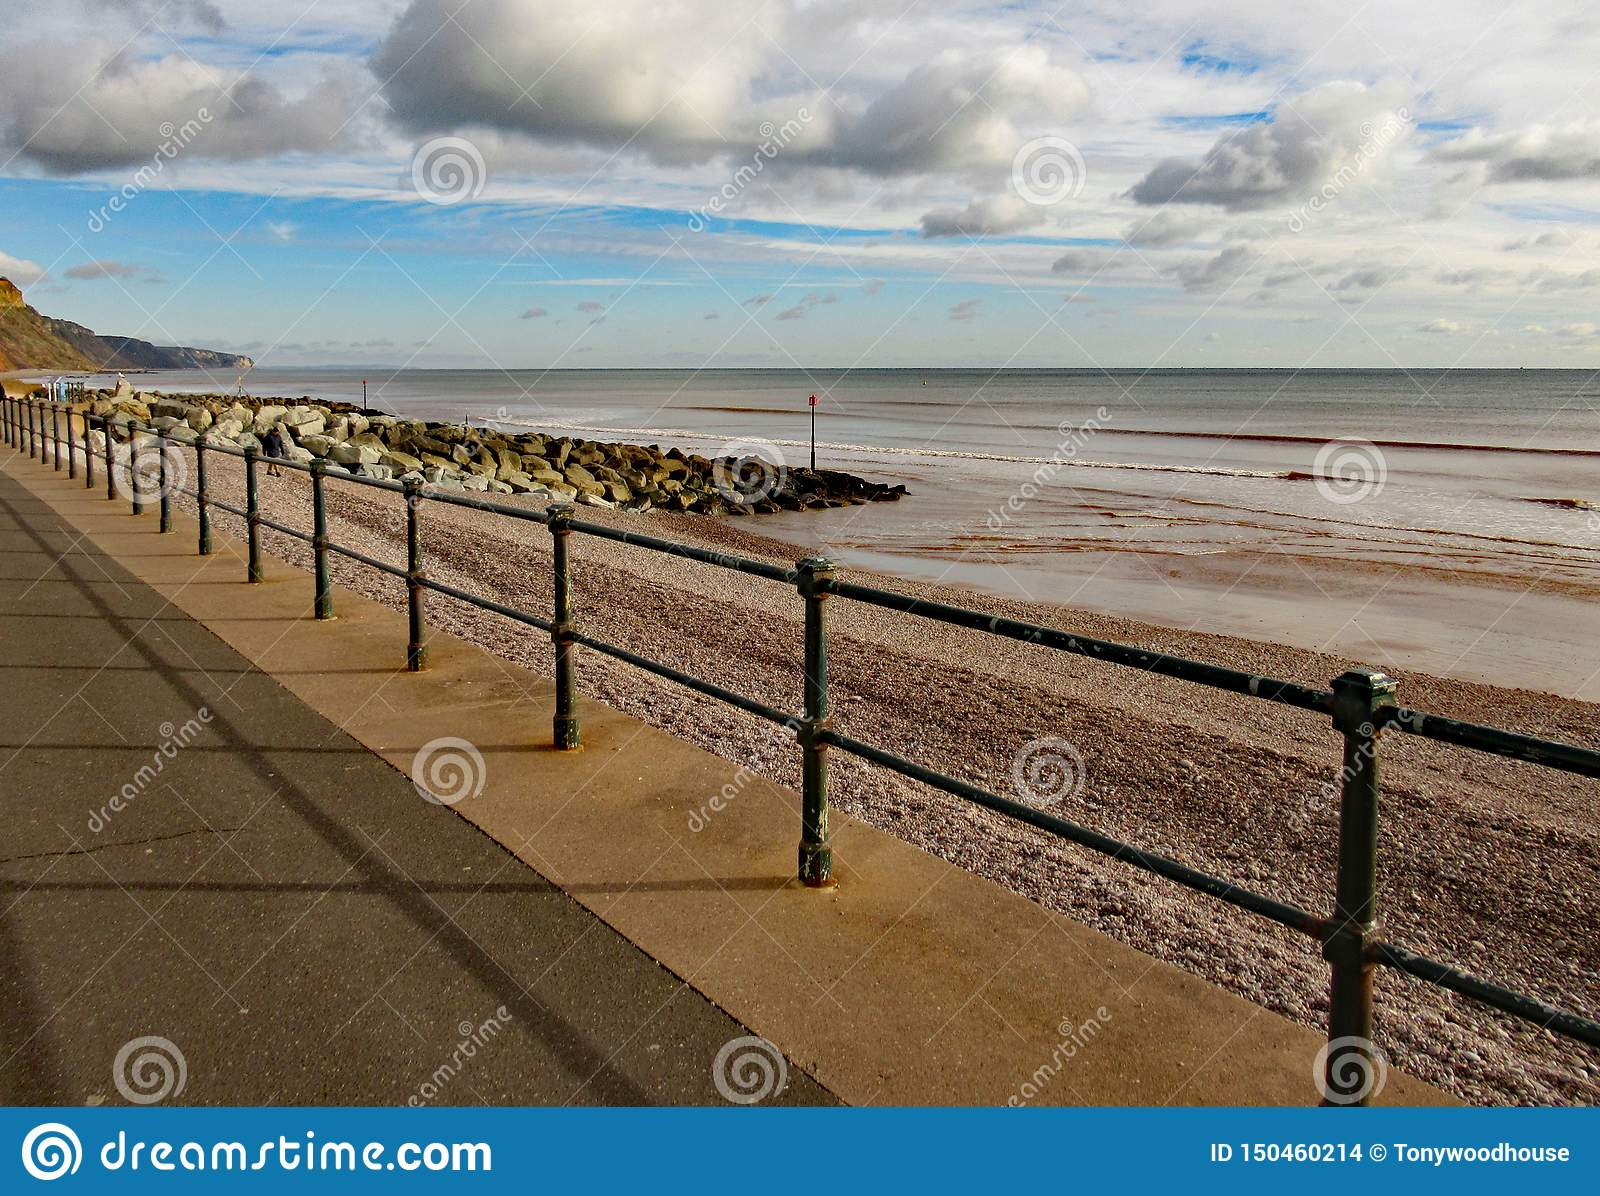 Metal railings on Sidmouth Esplanade, to stop people falling on to the pebble beach some 3 metres below